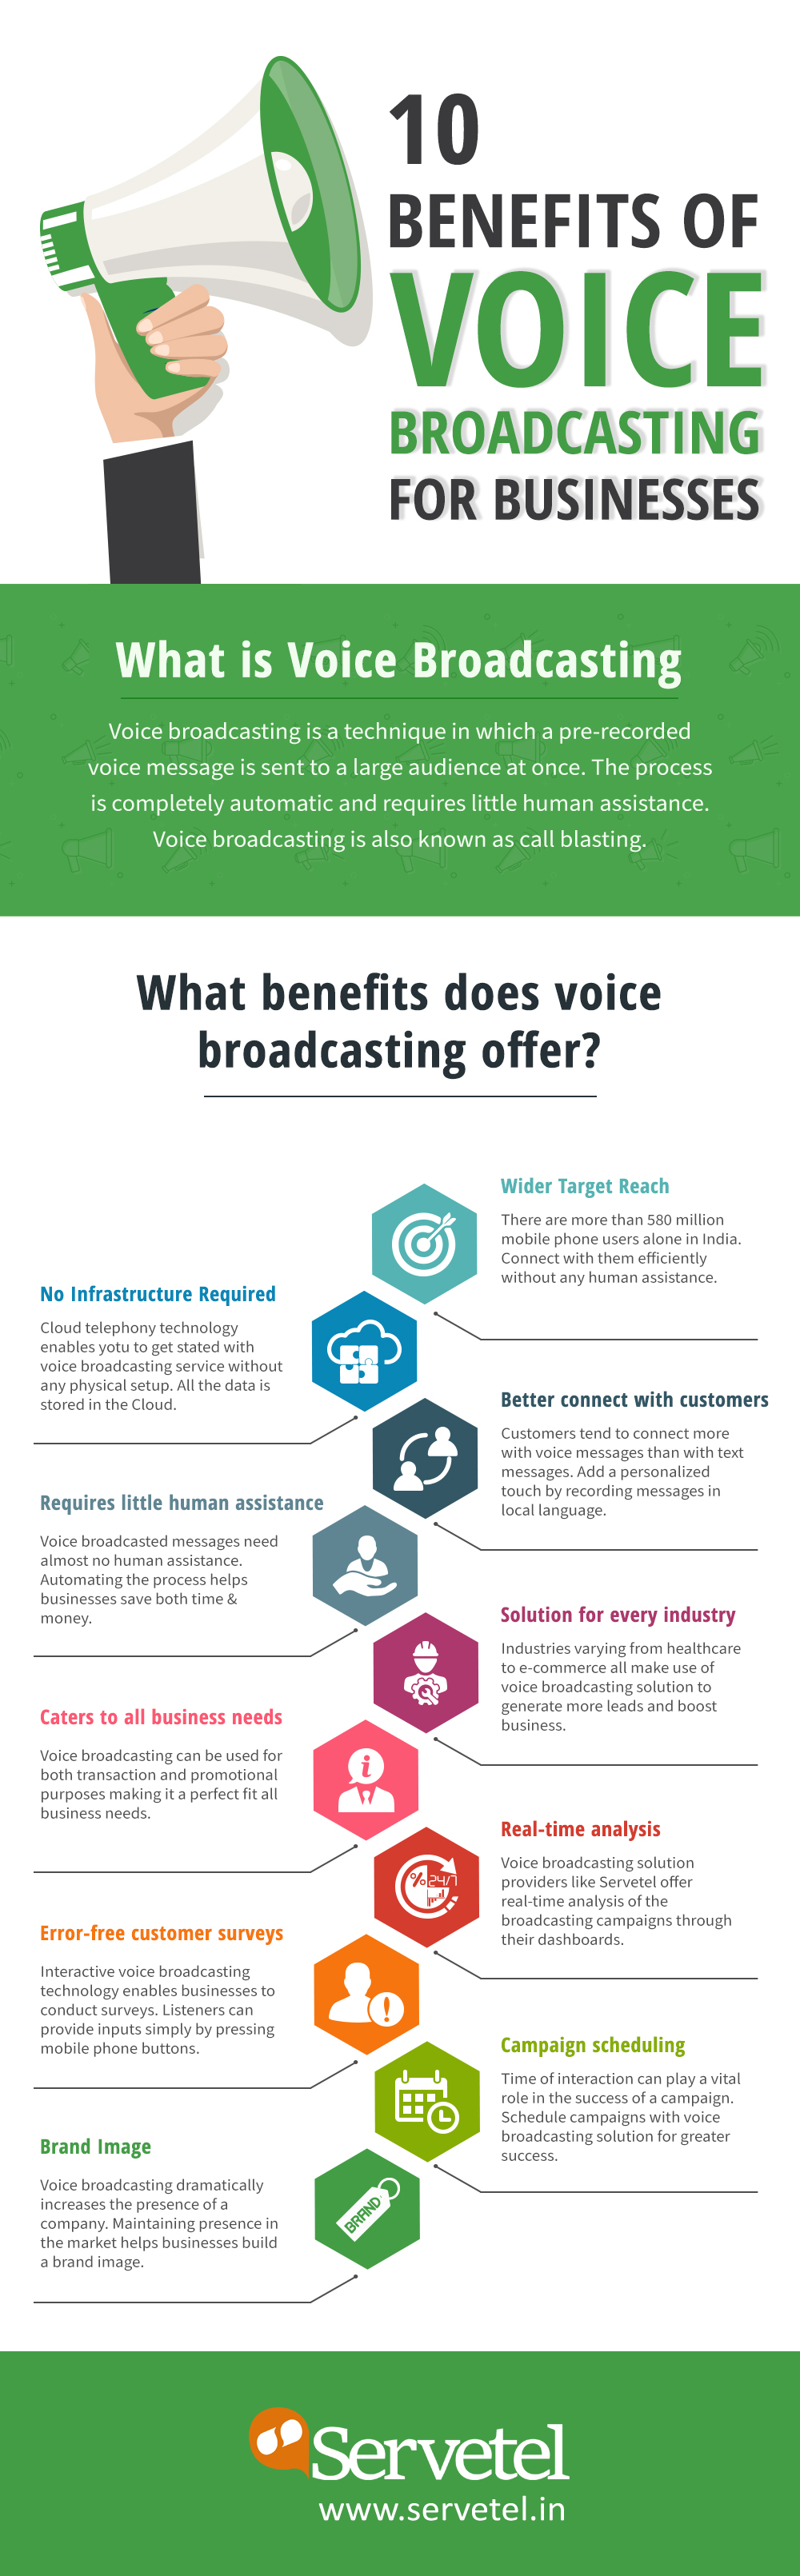 Top 10 benefits of voice broadcasting service for businesses